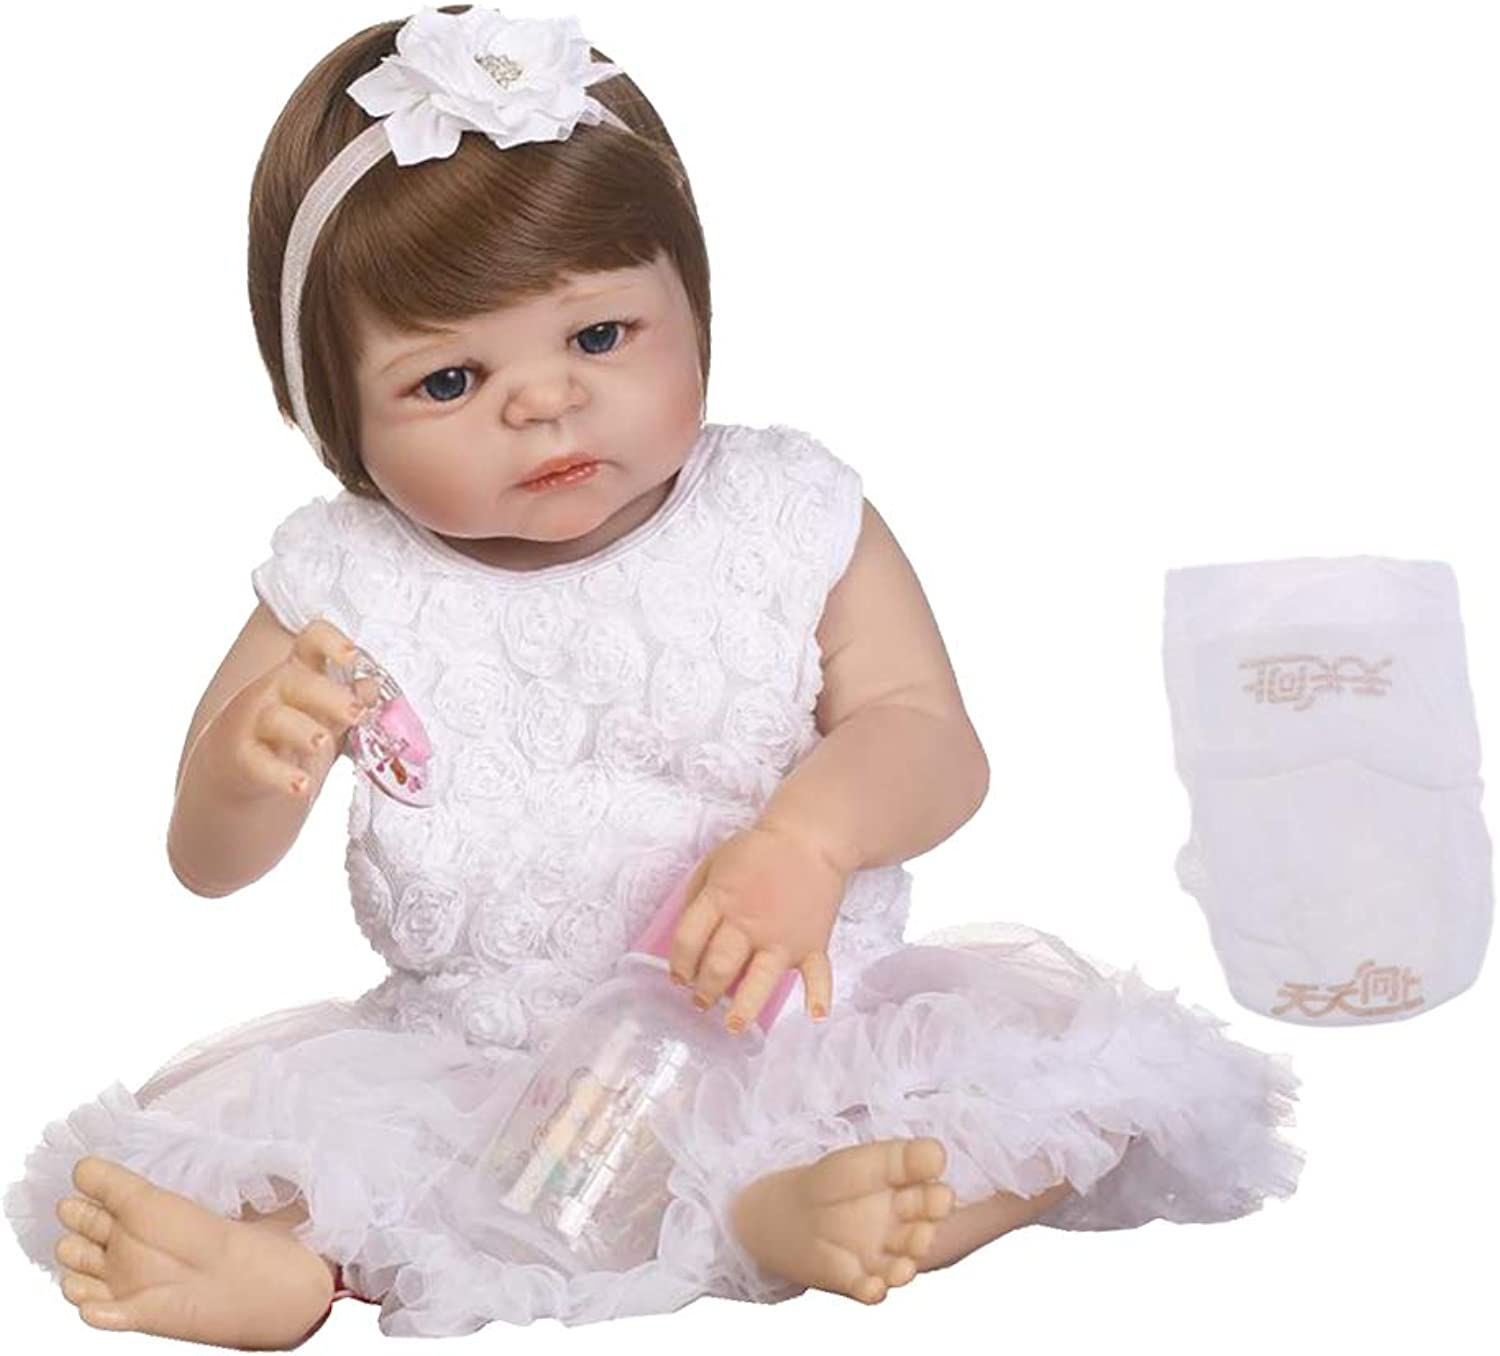 Perfeclan 22inch Realistic Reborn Baby Girl Doll with Short Hair & Floral Dress Kids Sleeping Playmate